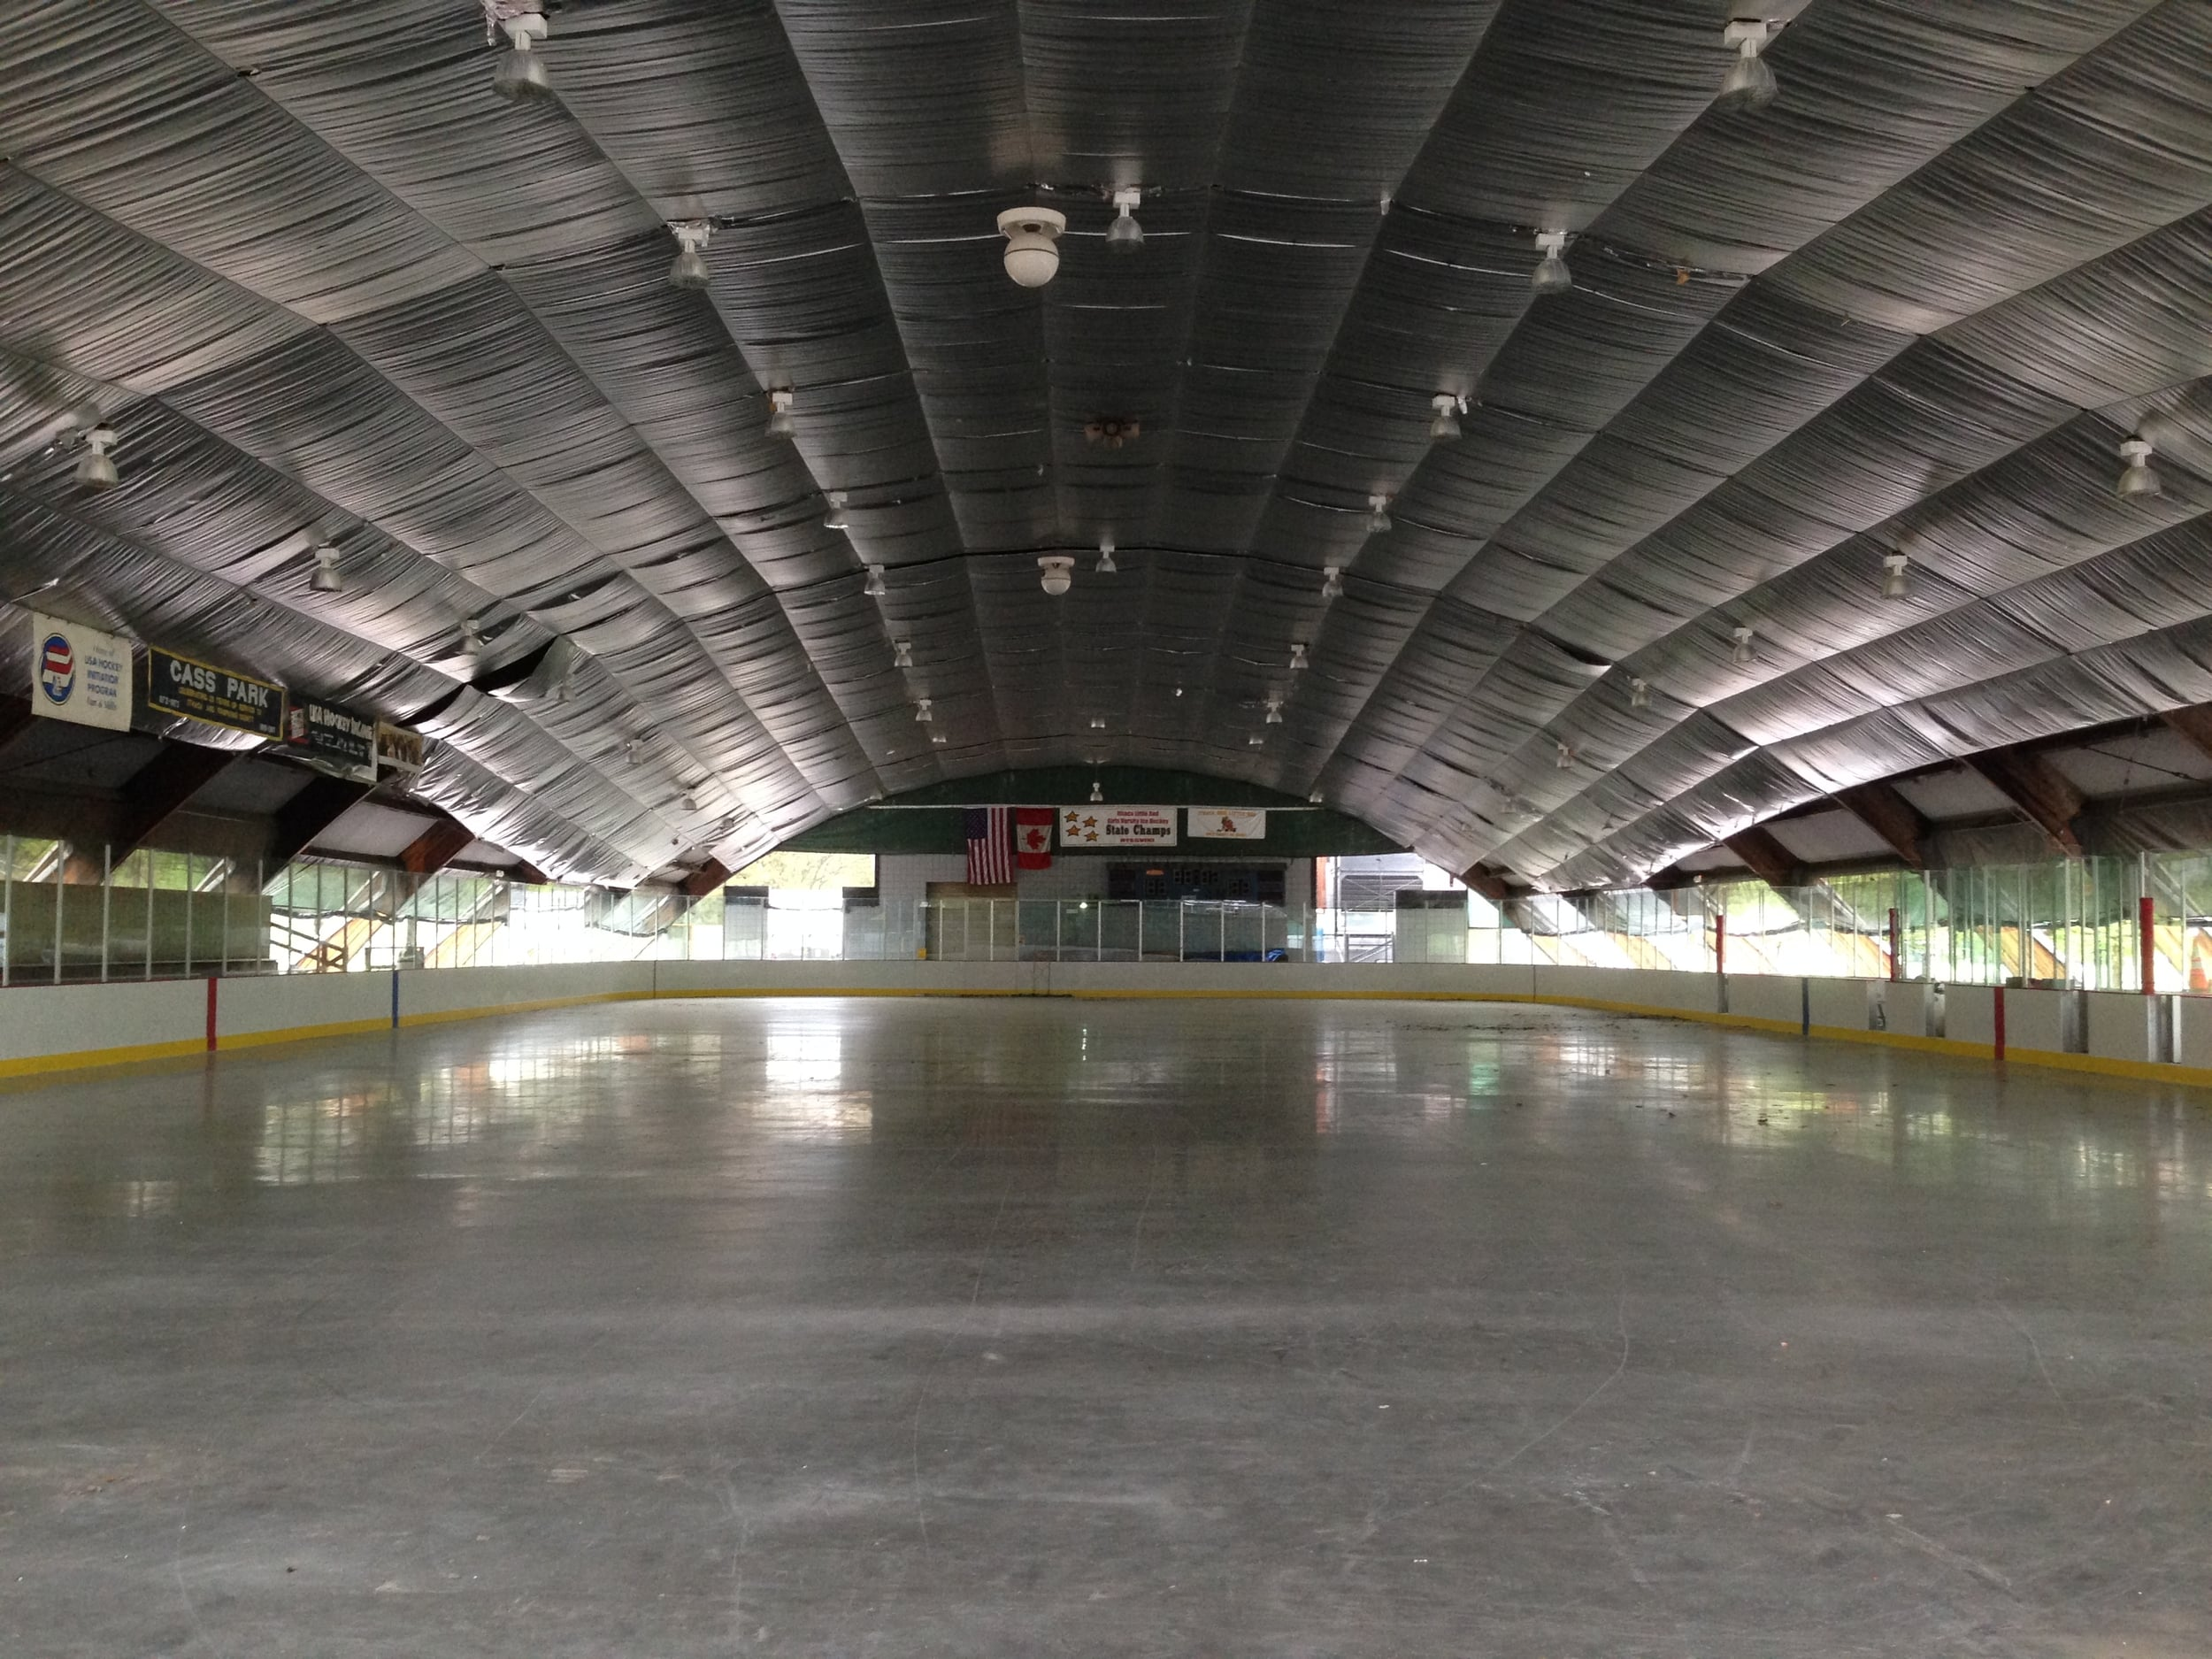 Cass Park Ice Rink, City of Ithaca